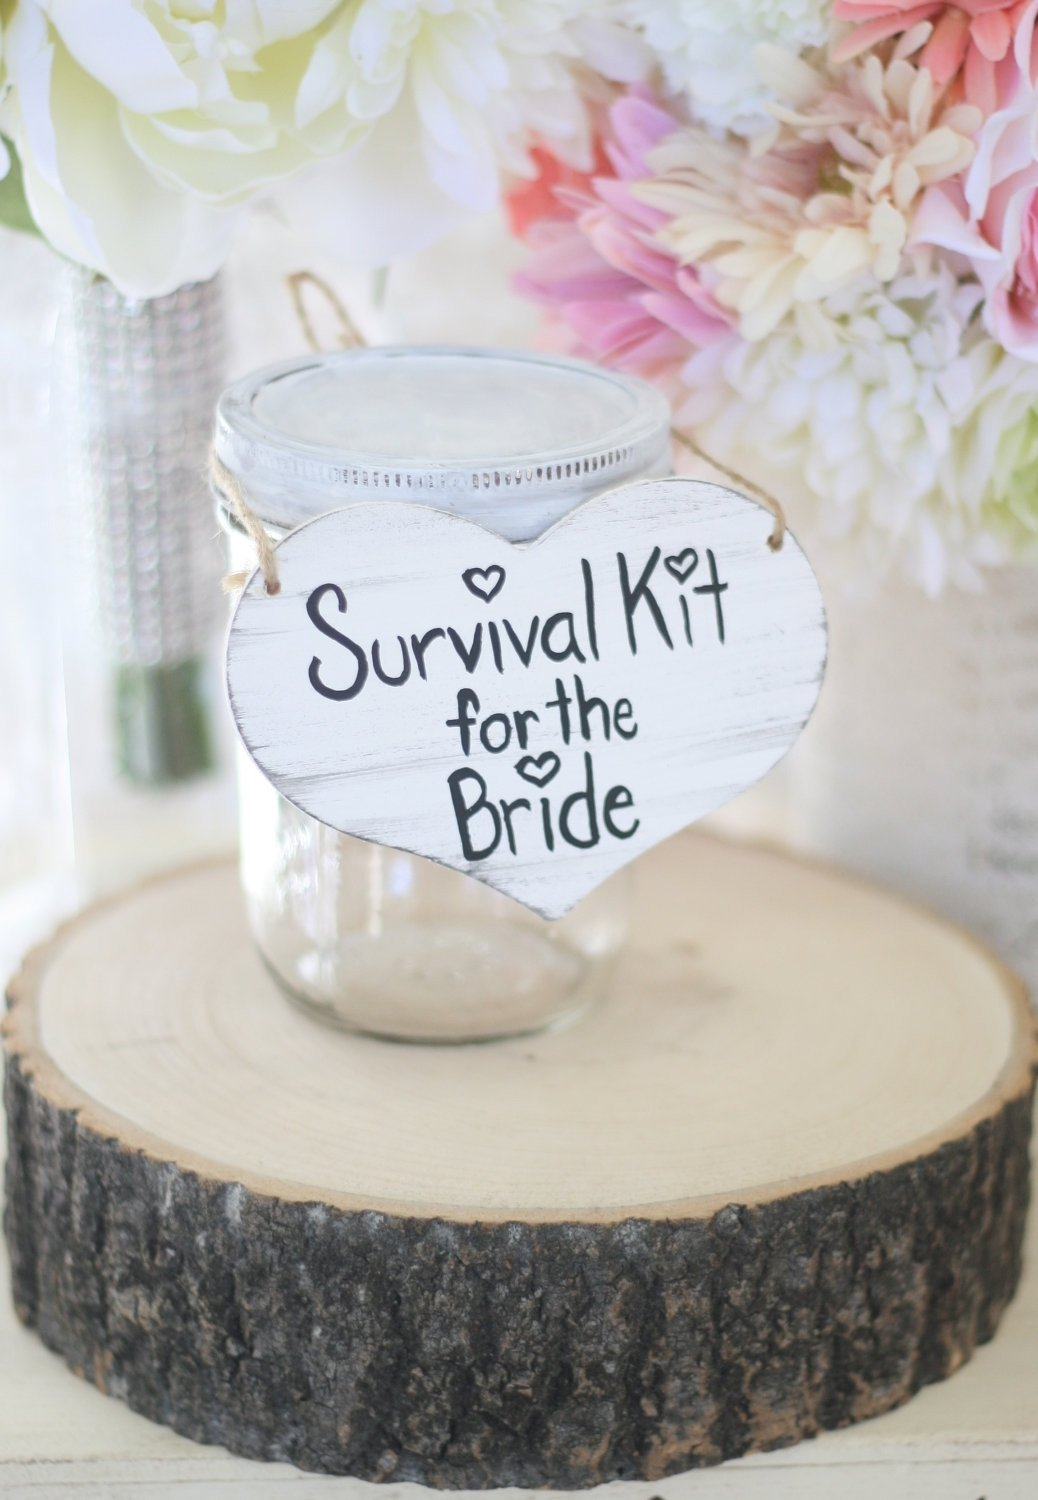 10 Best Unique Bridal Shower Gift Ideas unique wedding shower gifts nice small for bride top 50 best bridal 2020